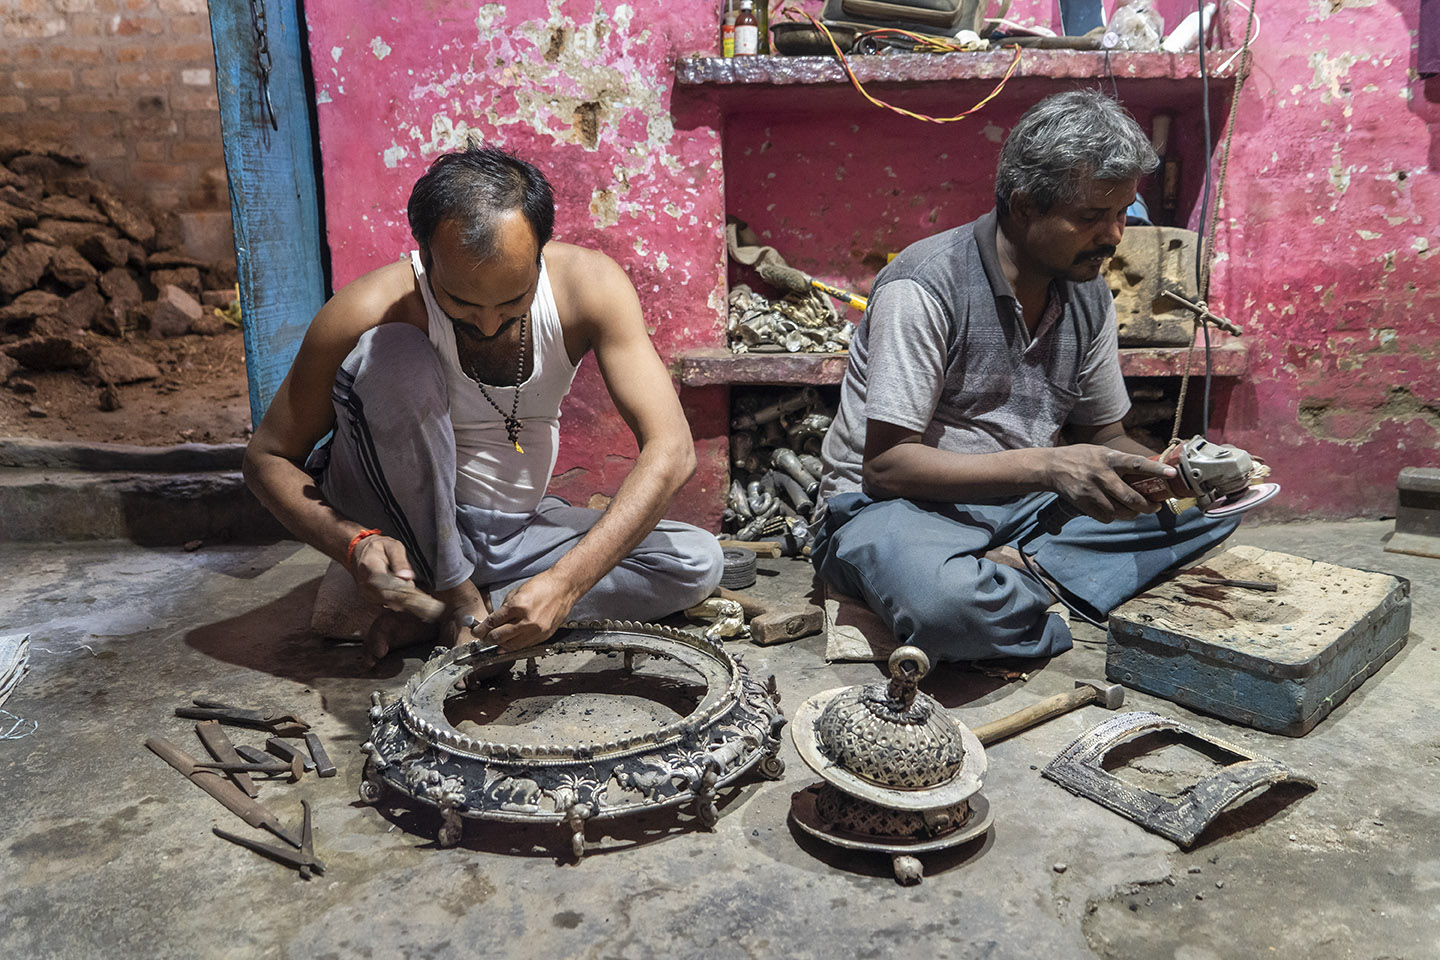 Om Prakash (right) and Laxmi Narayan (left) working on a bell metal birdcage in their home